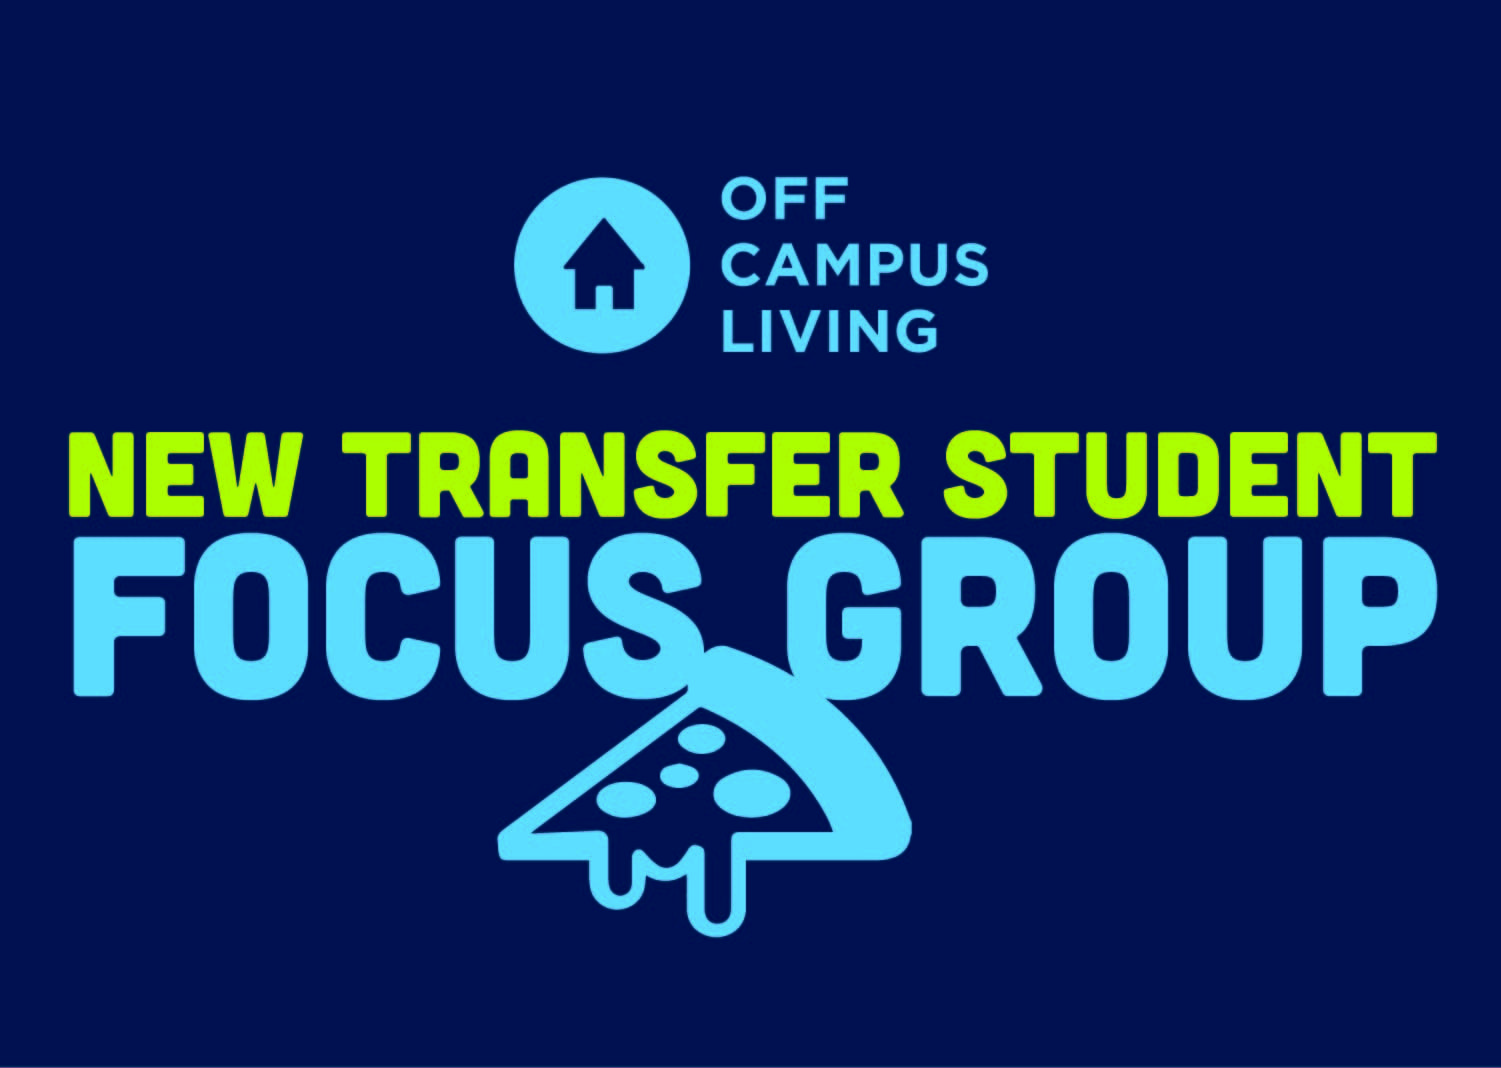 New Transfer Student Focus Group